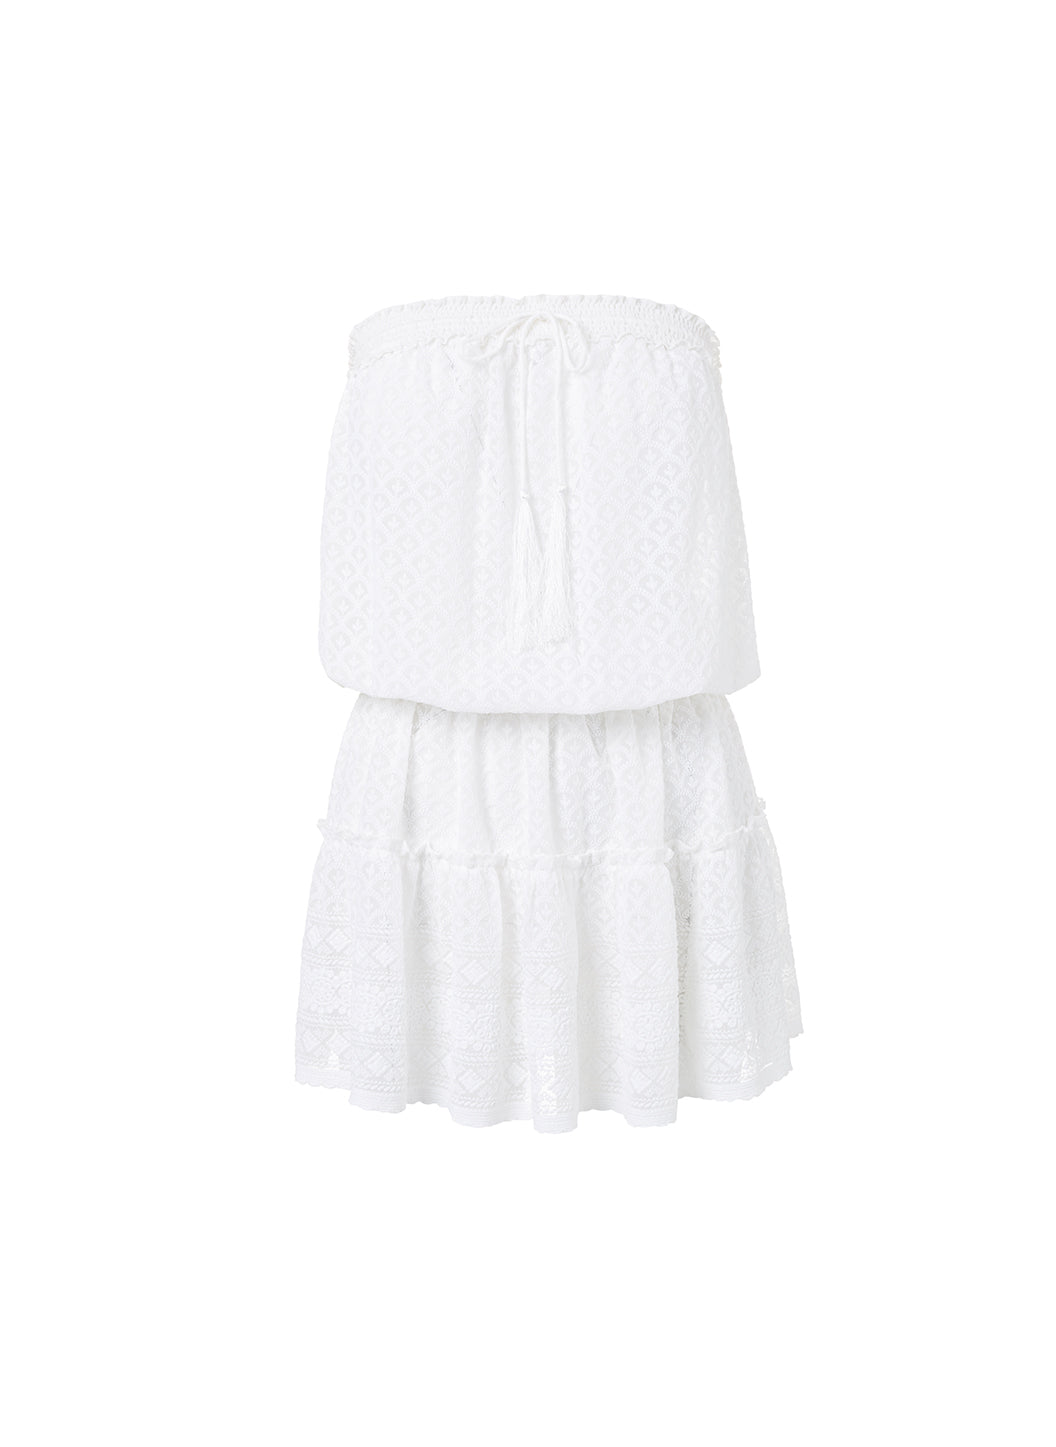 Fru White Textured Bandeau Short Frill Beach Dress - Melissa Odabash Beachwear